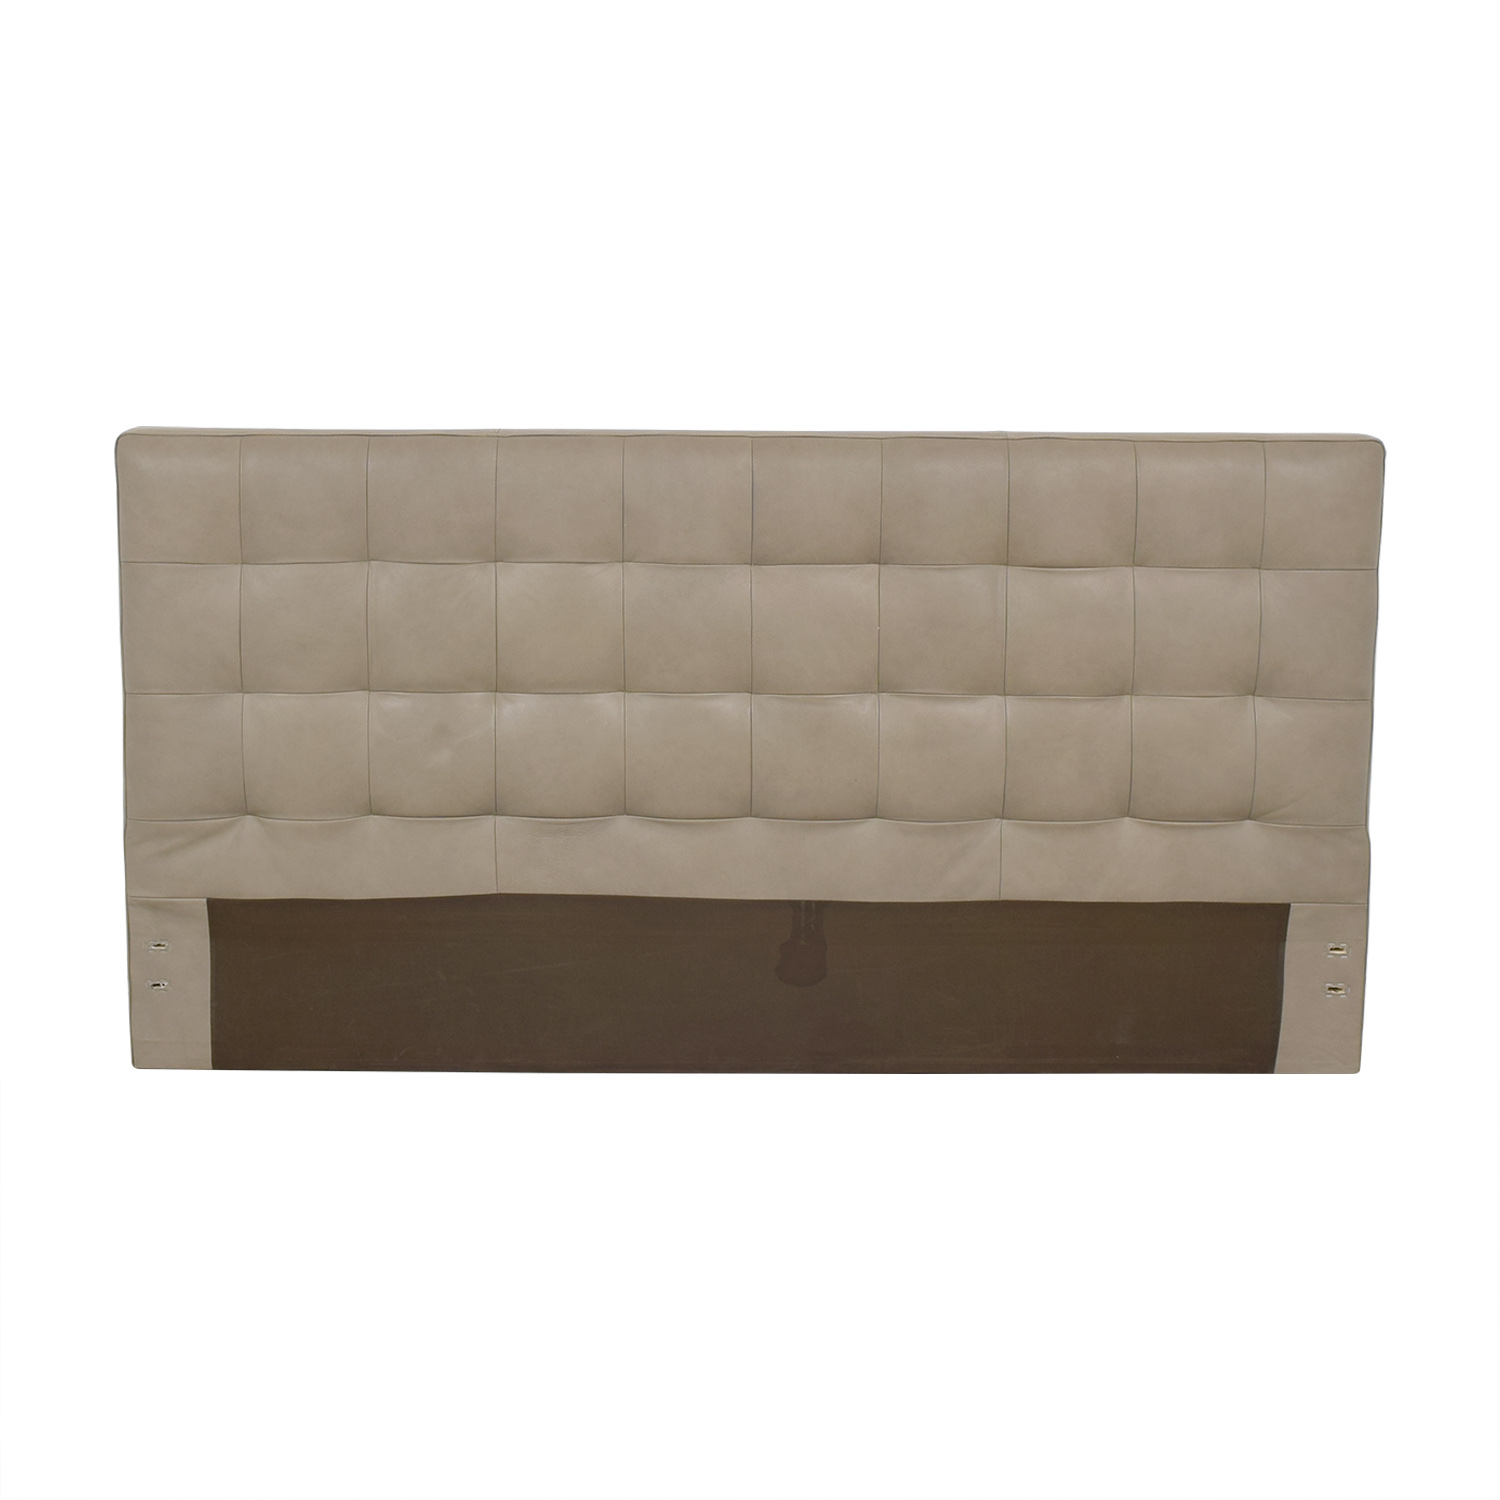 buy West Elm Grid Tufted King Headboard West Elm Headboards